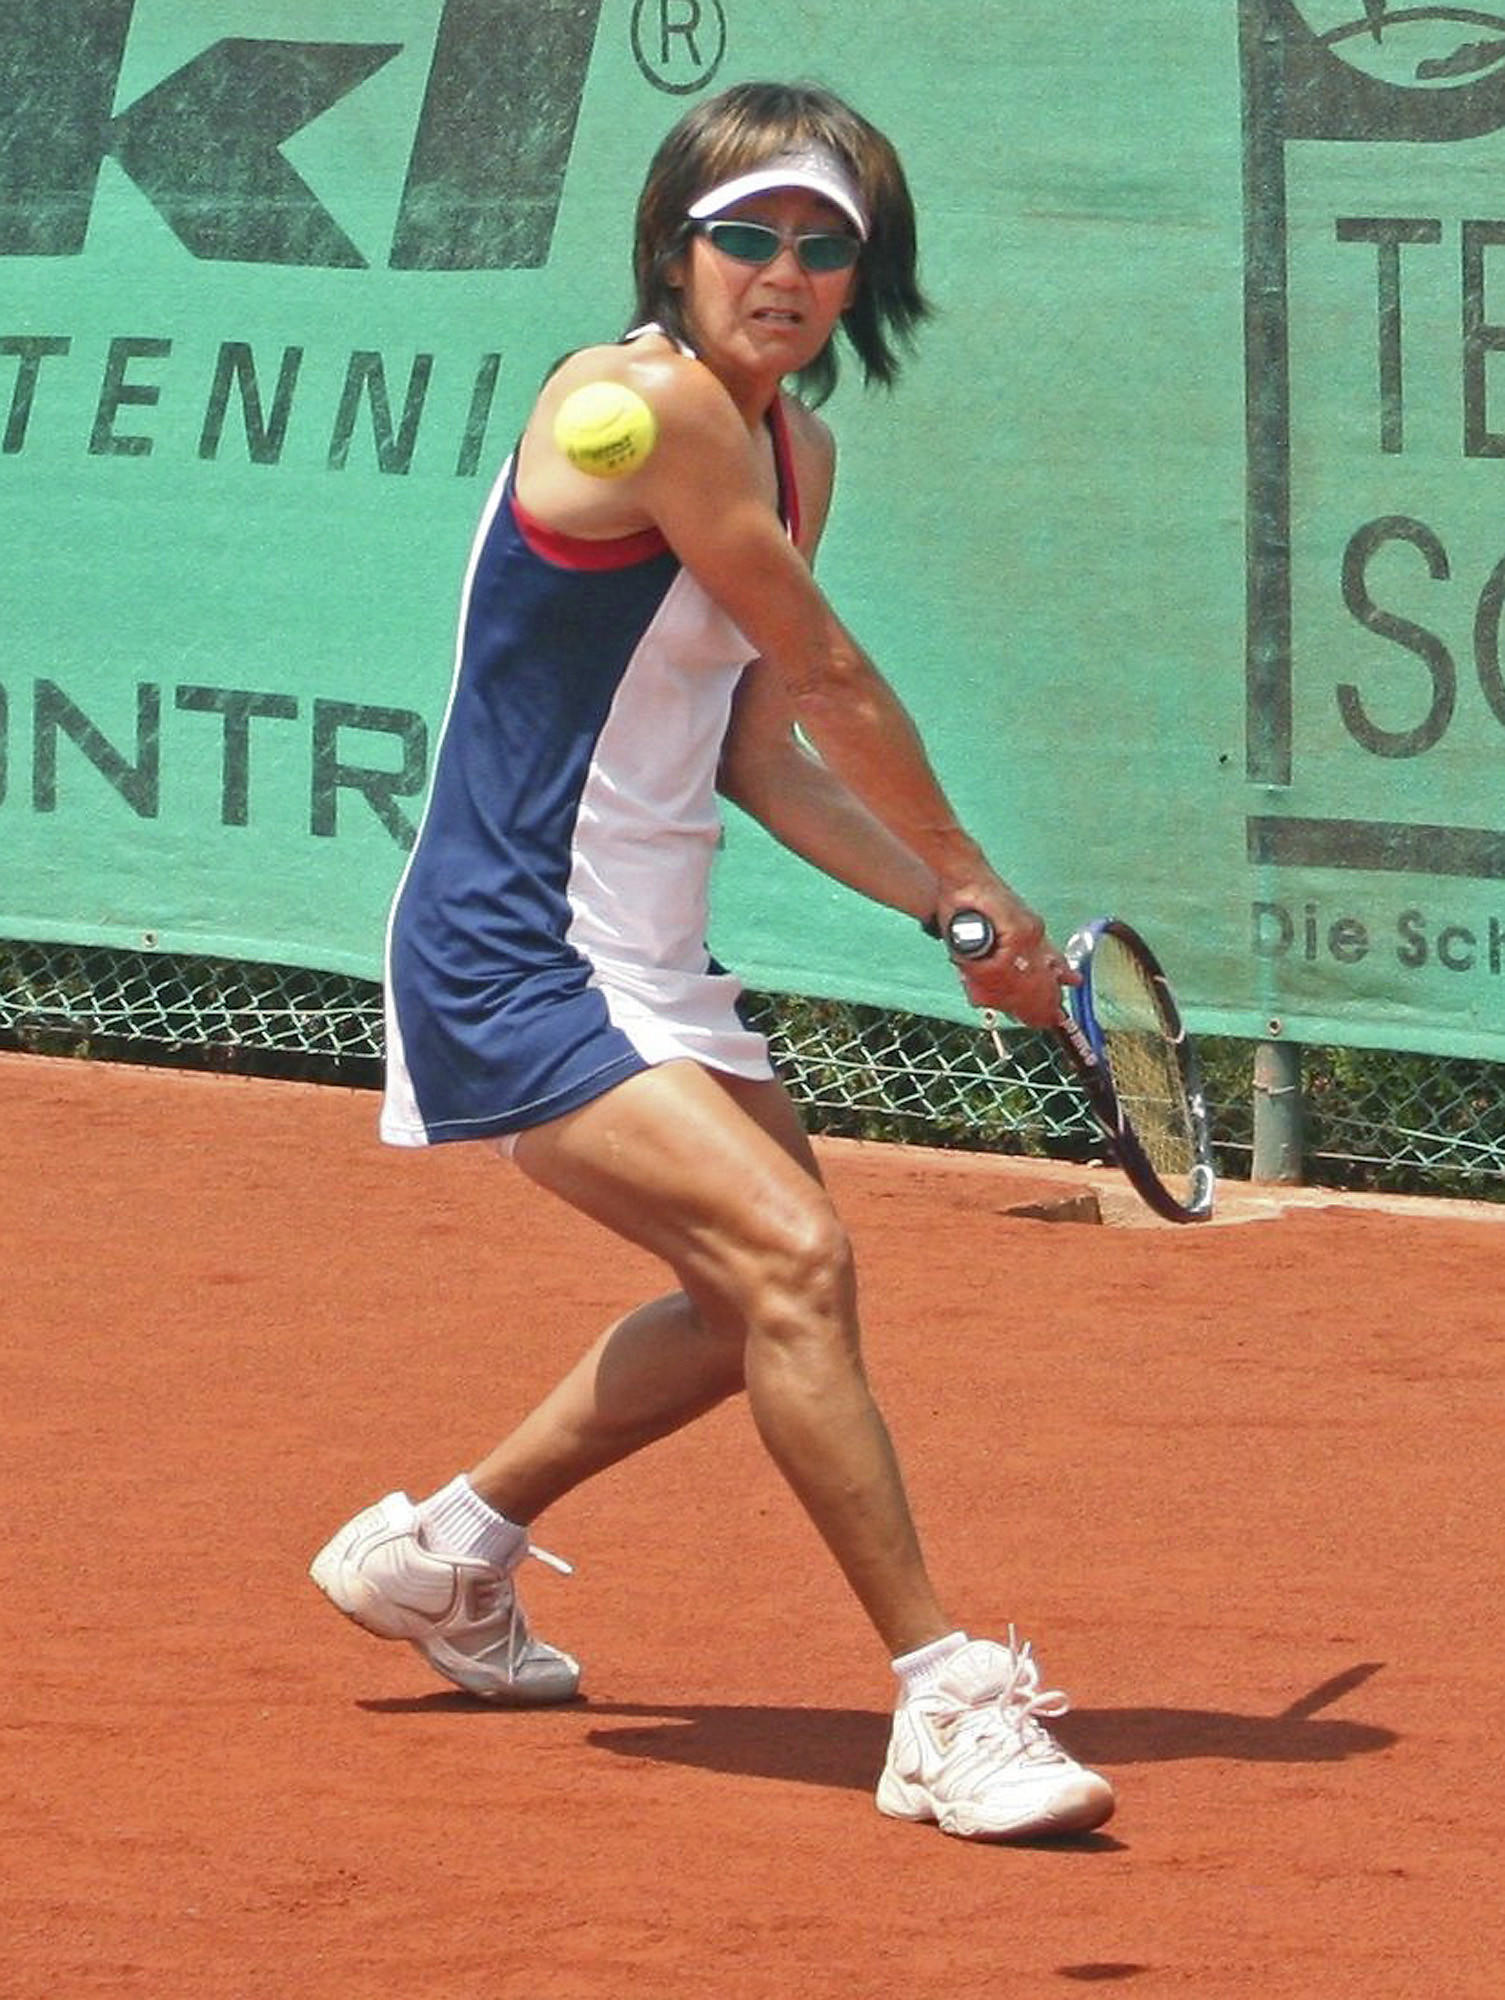 Tina Karwasky, Glendale resident and member of the United States tennis team, helped the team win the Maureen Connolly Cup.